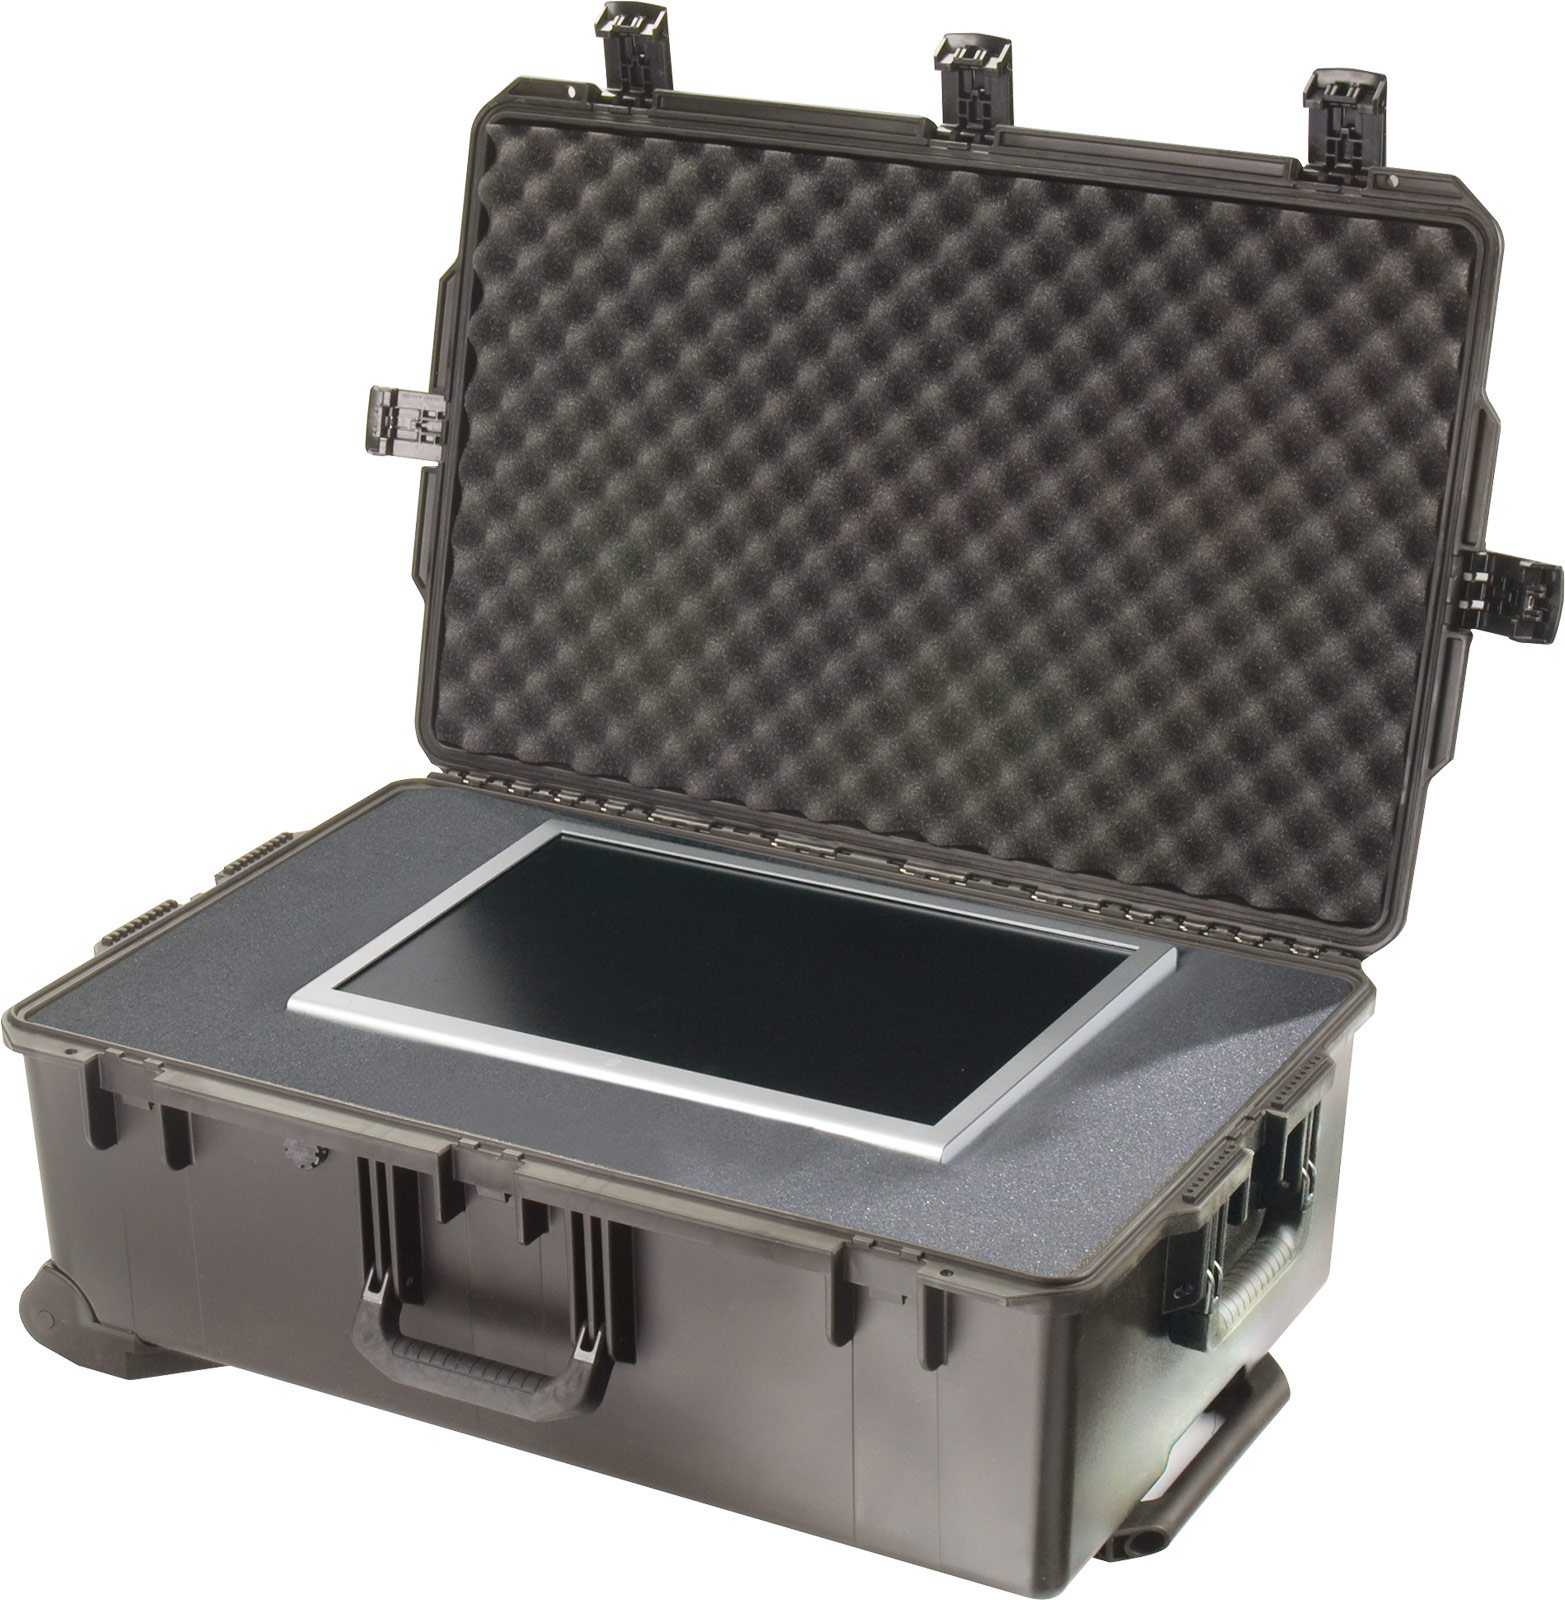 pelican im2950 storm monitor travel case